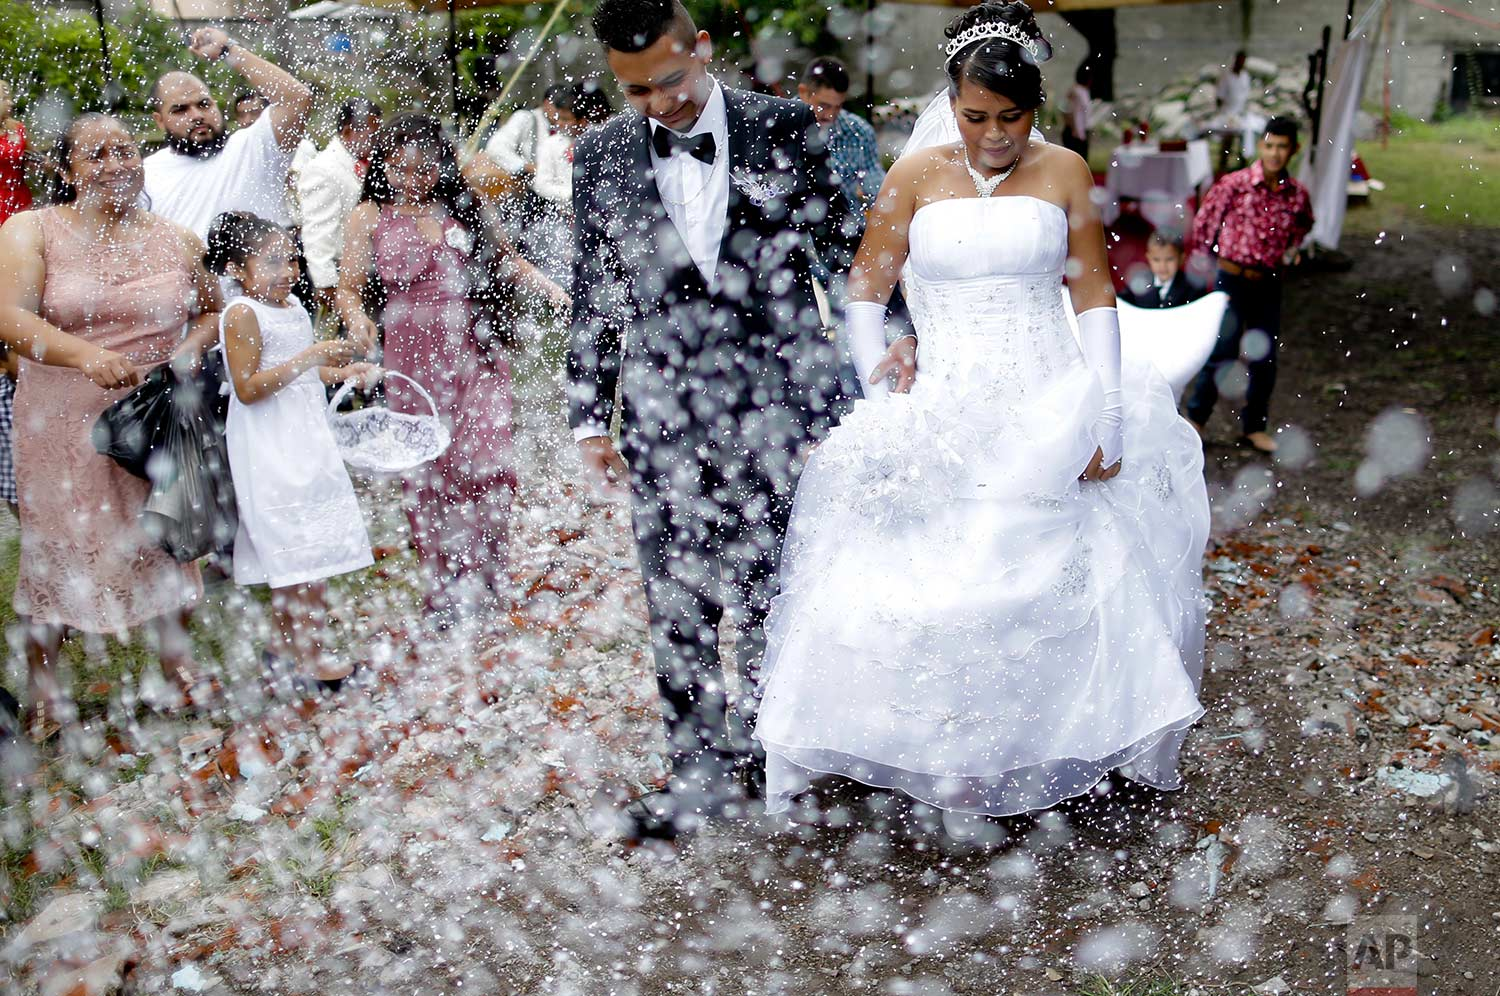 Aremy Sanchez Flores walks with her husband Jose Padilla after getting married in a empty lot in front a church that collapse after an earthquake in Atzala, Mexico, Saturday, Sept. 23, 2017. Eleven people died during a baptism last Tuesday in the Church where the couple had to get married. Flores said she was very sad but is time to move forward. (AP Photo/Natacha Pisarenko)